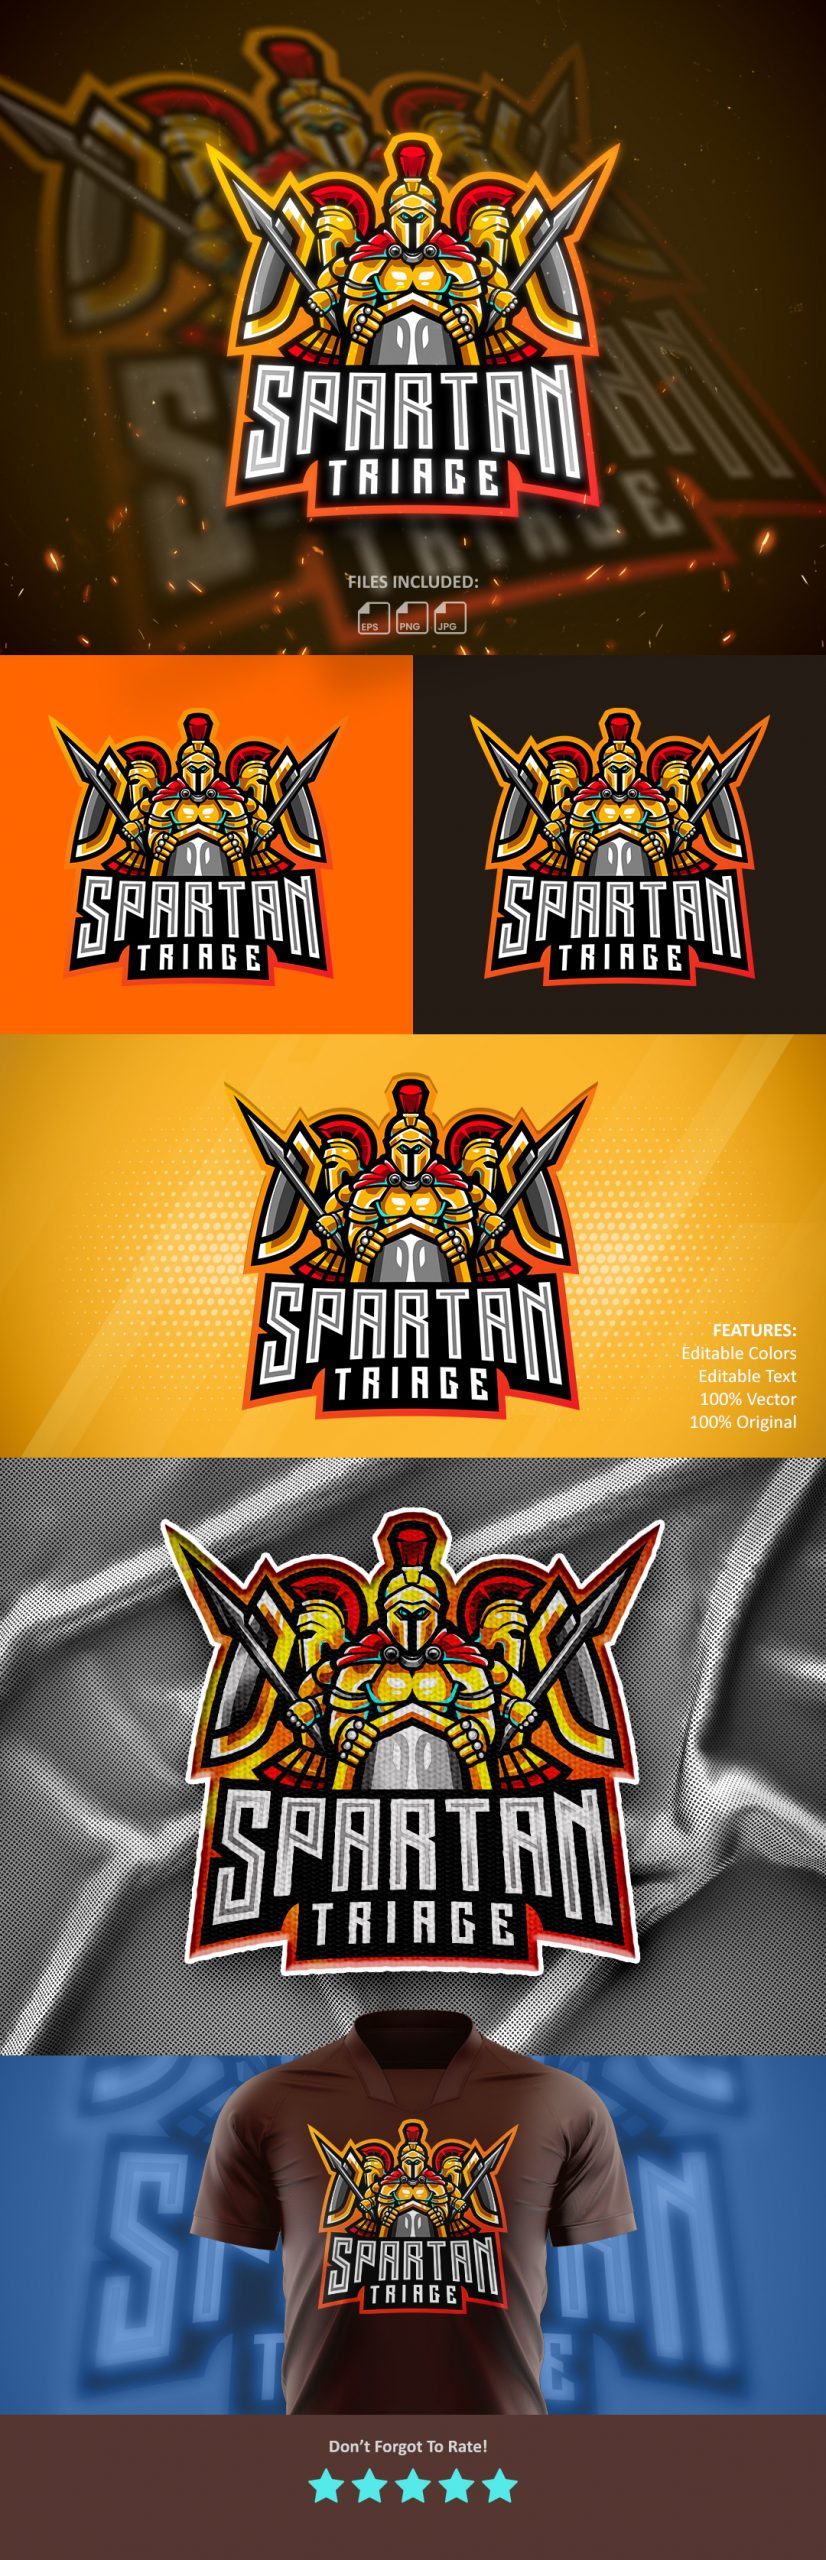 Free-Download-Spartan-Fighter-Mascot-Logo